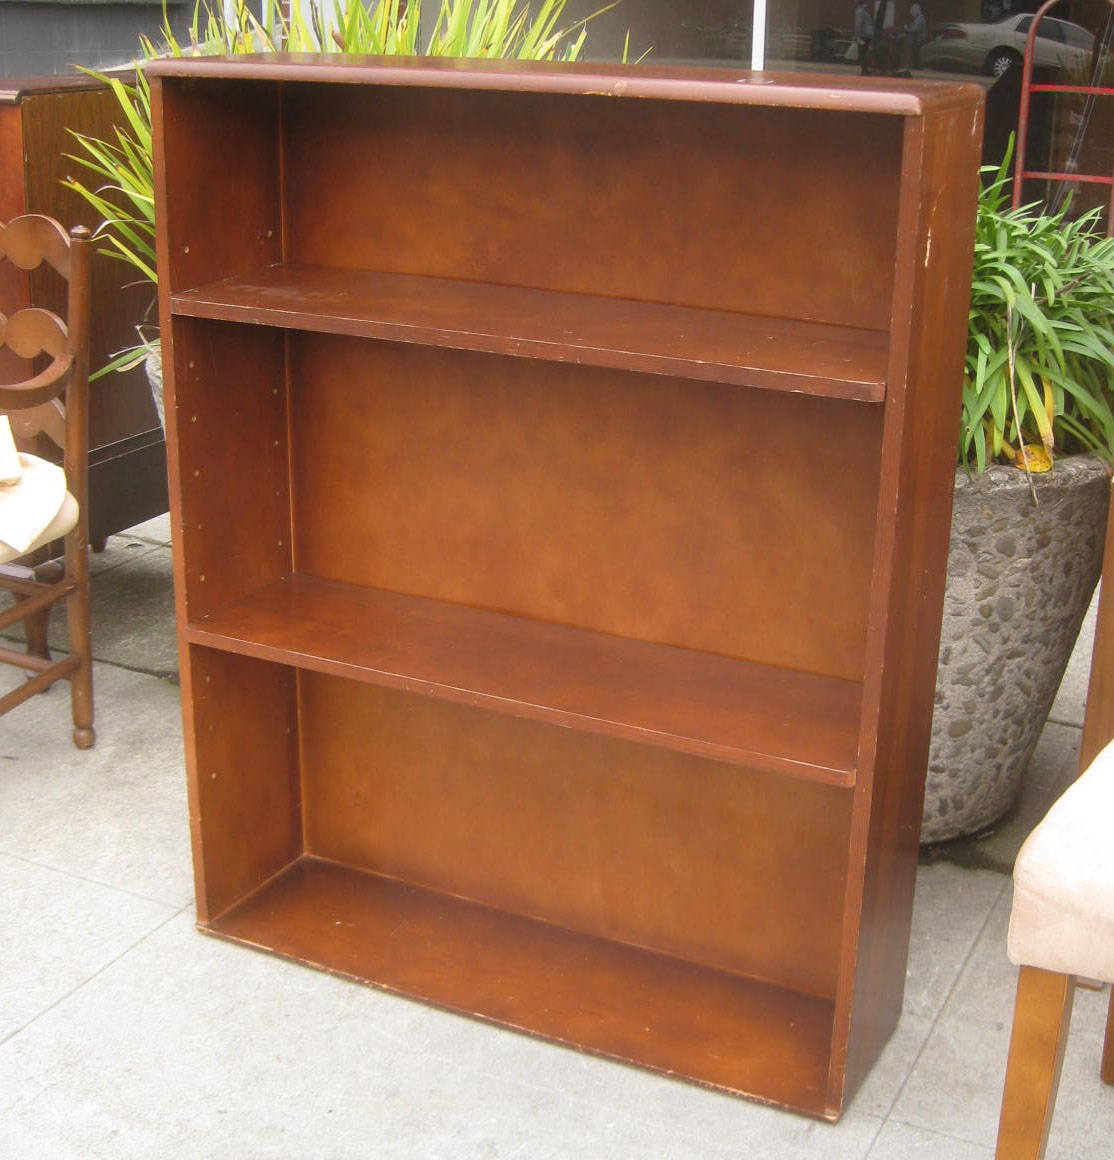 Marvelous photograph of  COLLECTIBLES: SOLD Wooden Bookshelf [w/ adjustable shelves] $40 with #989E2D color and 1114x1160 pixels